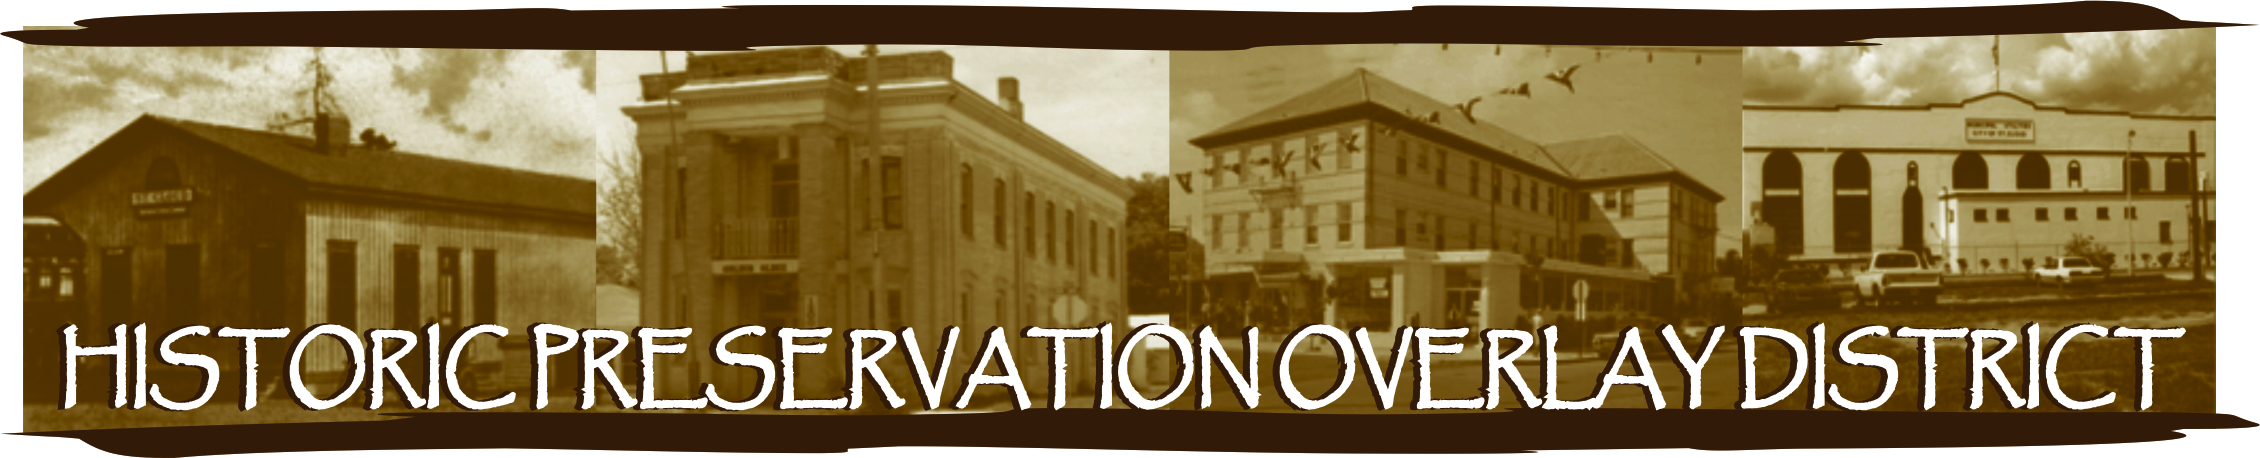 Historical places horizontal banner with words.jpg